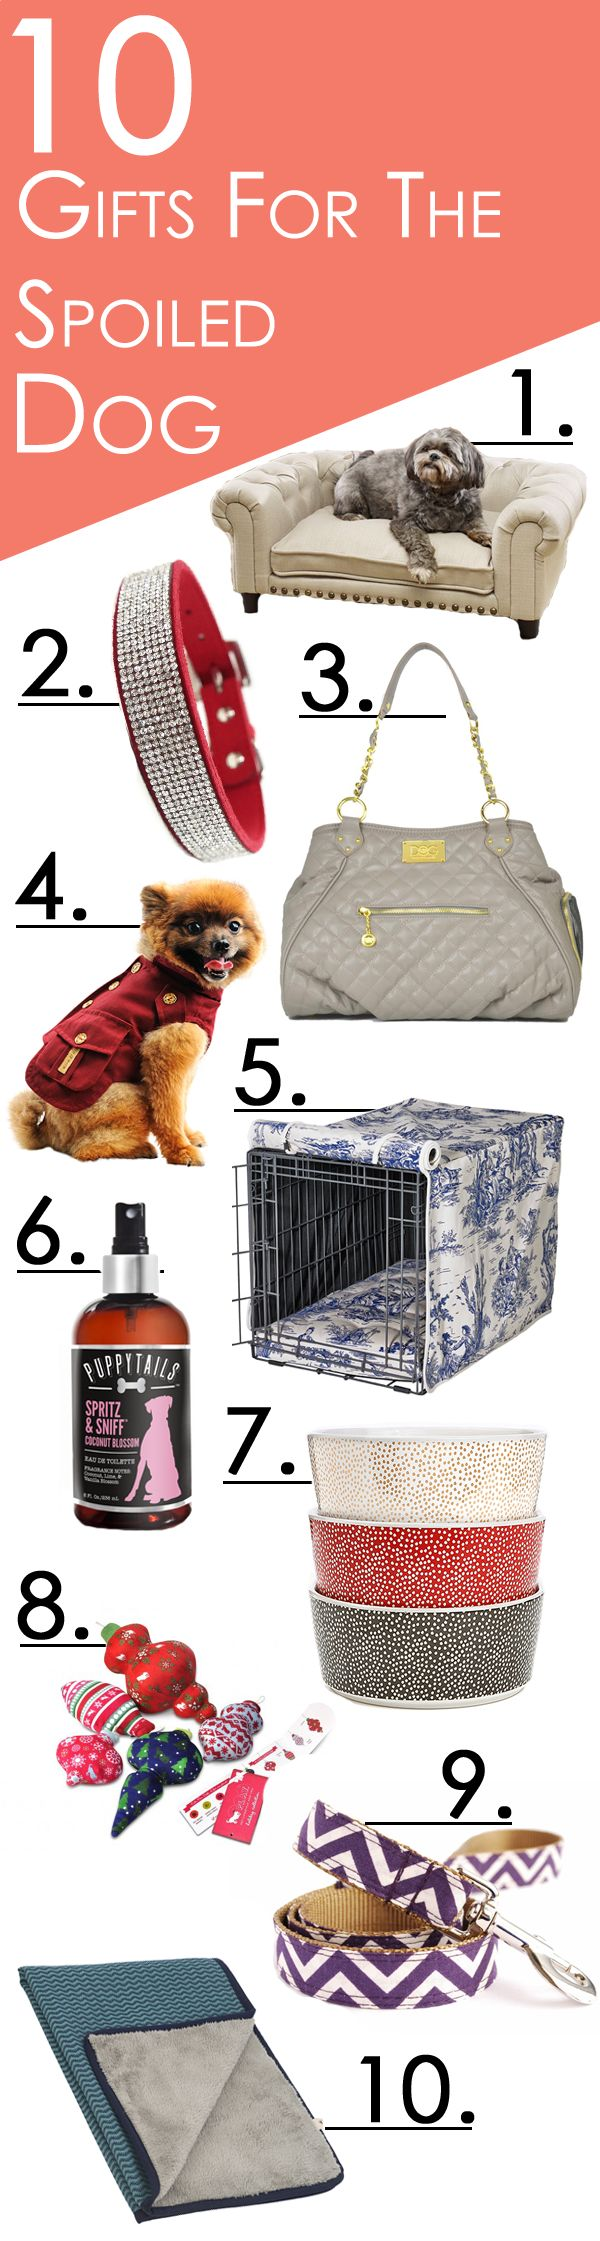 Spoil your dog even more with our selection of fashionable dog apparel, carriers, collars and more.